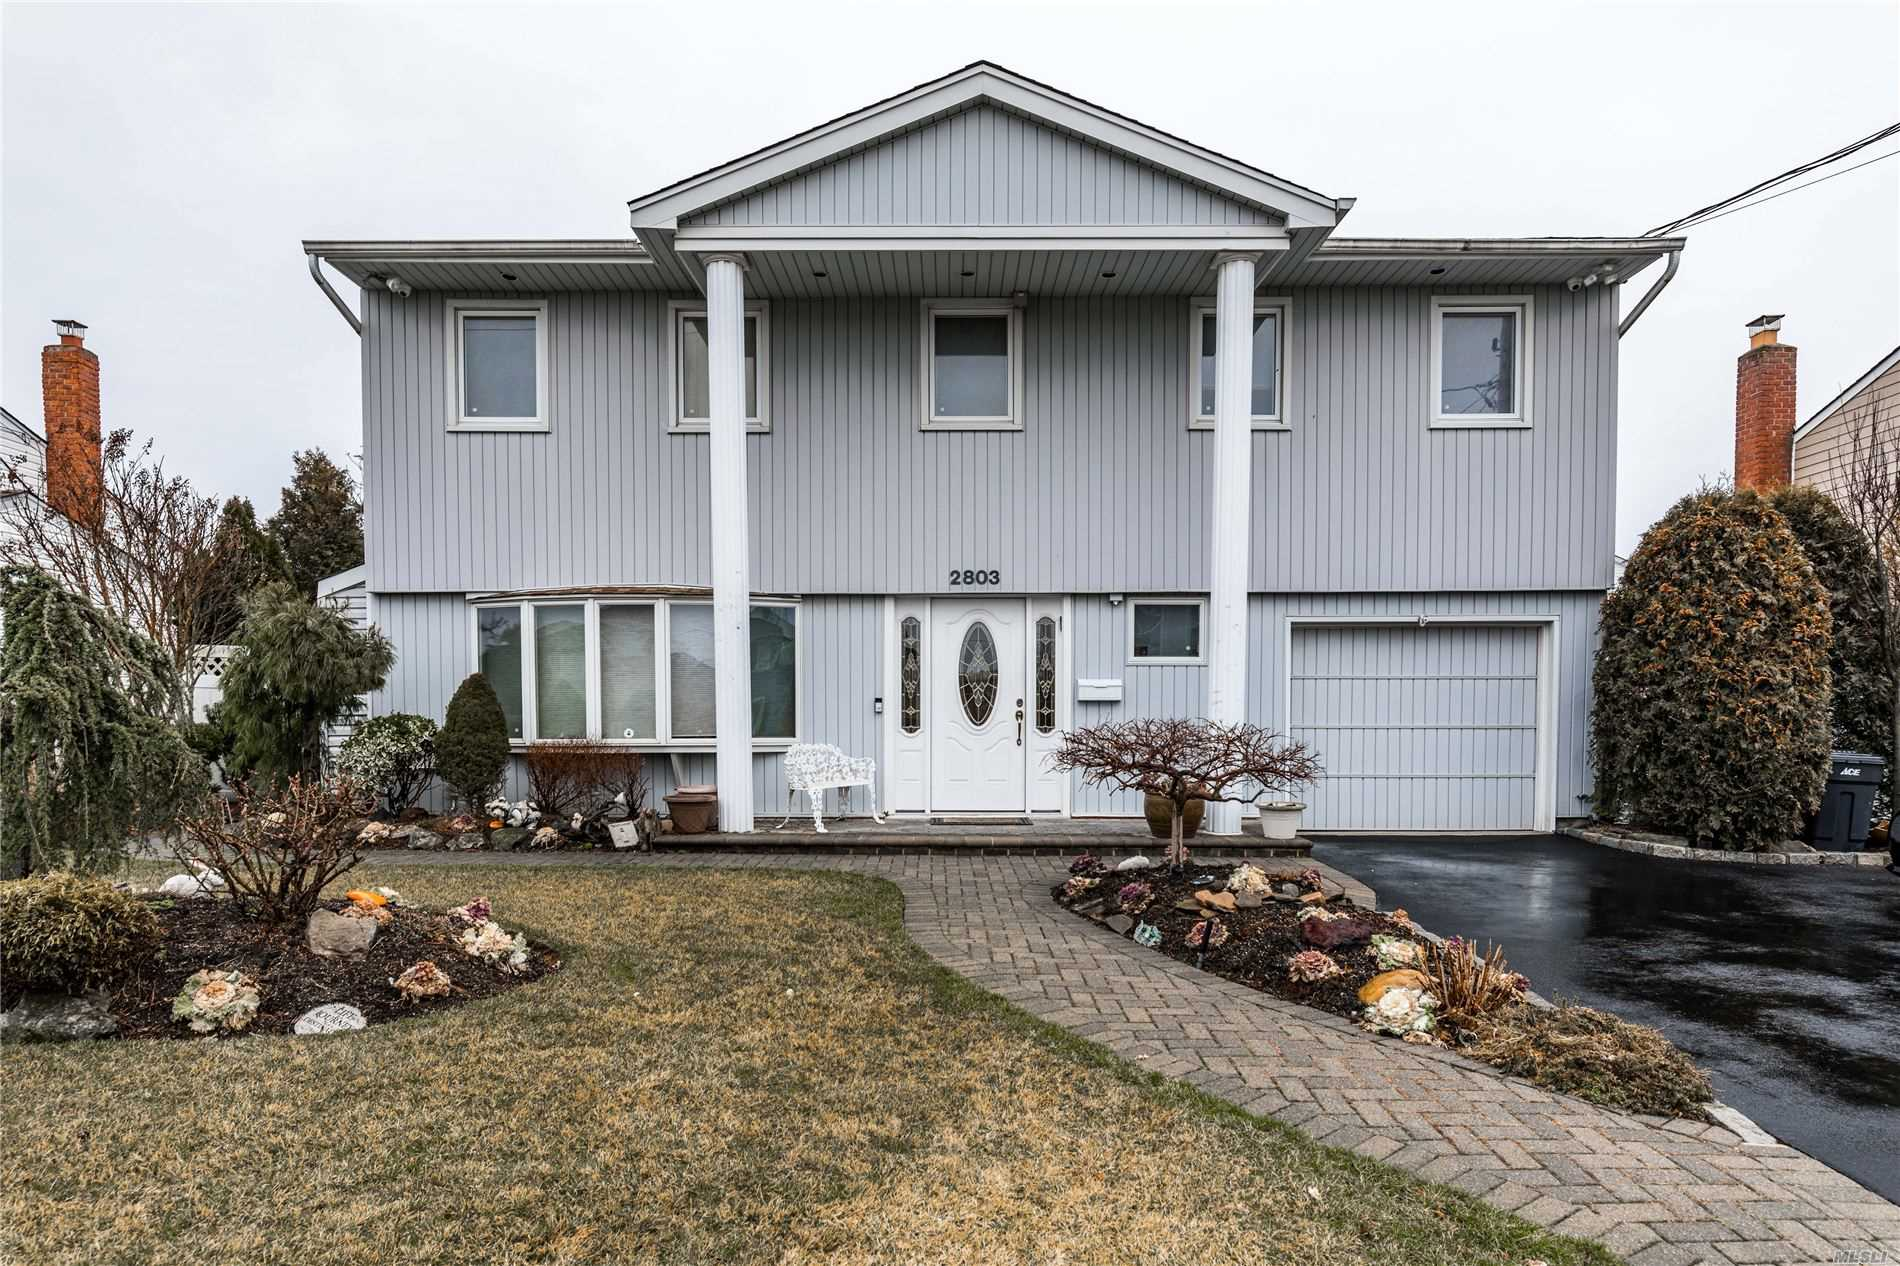 2803 Mandalay Beach Road, one of homes for sale in Wantagh